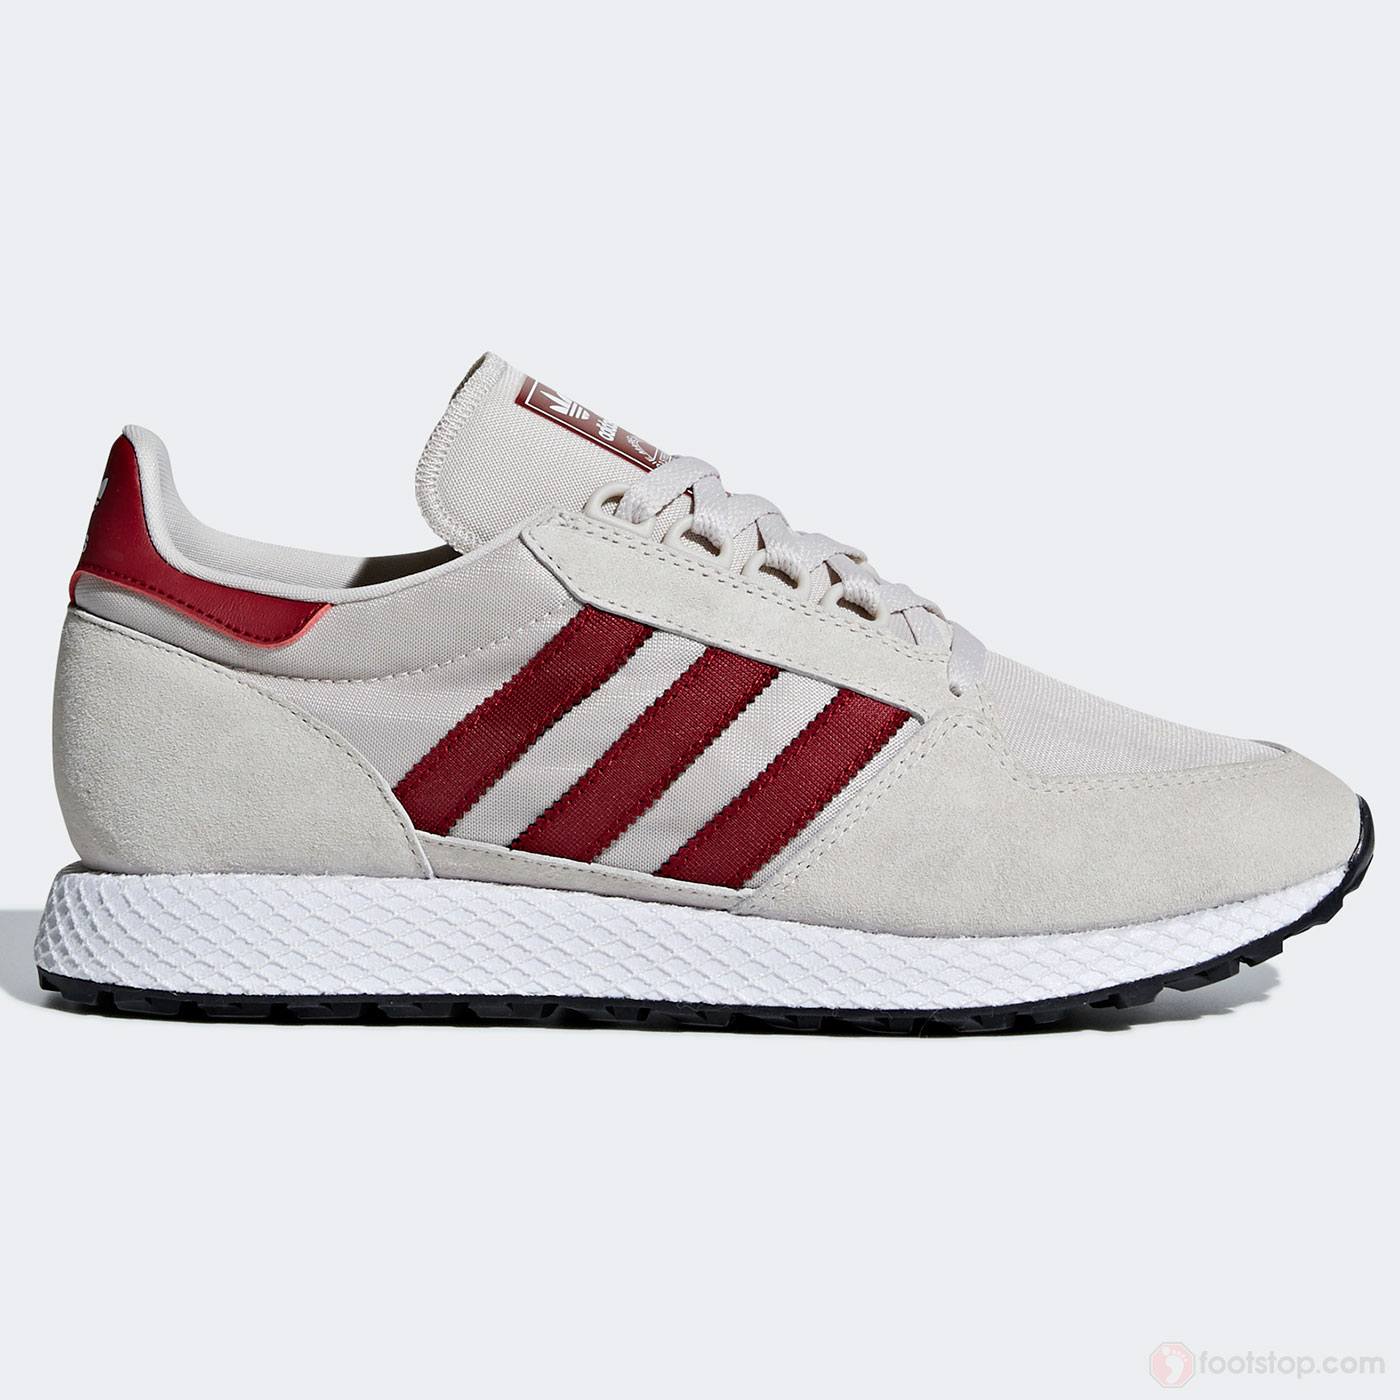 adidas forest grove (B41547) - footstop